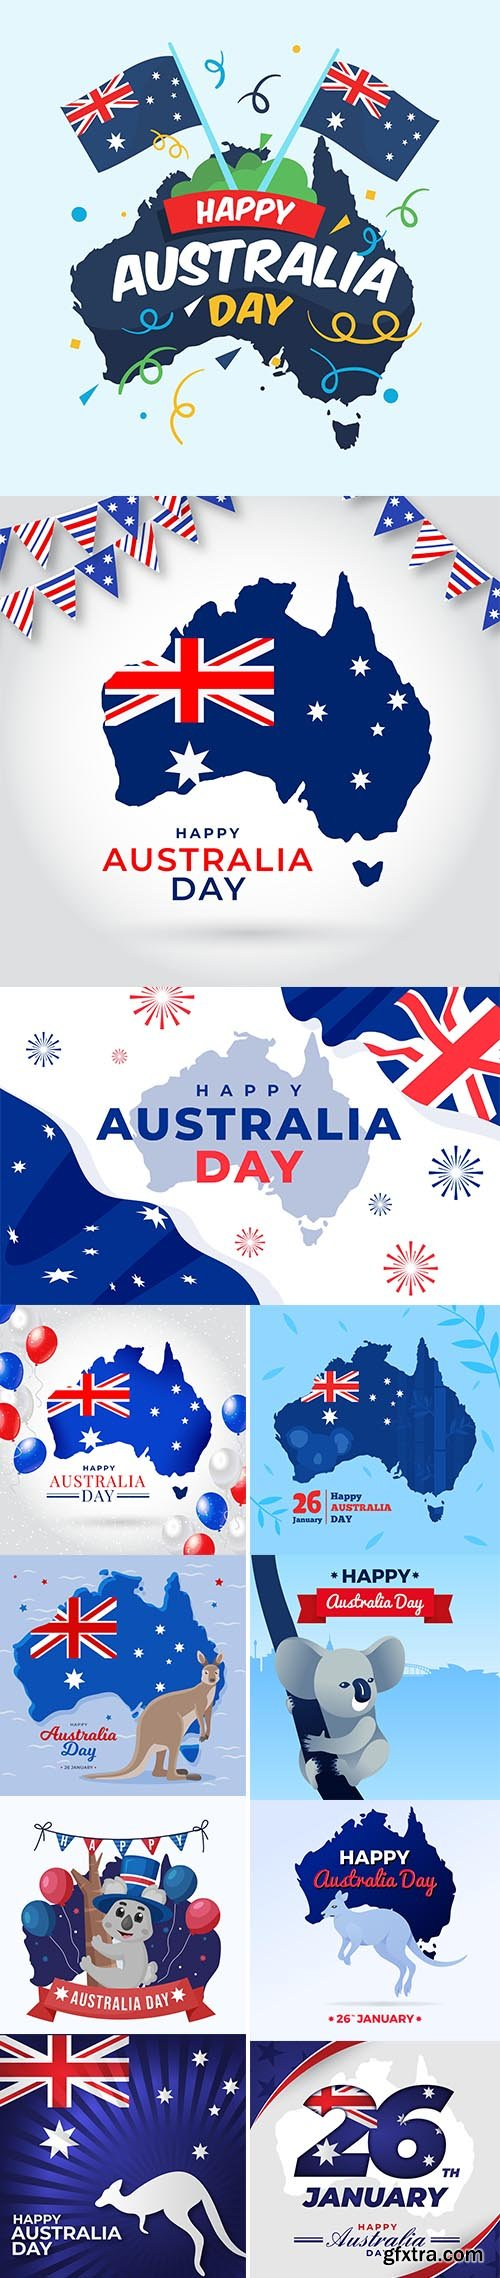 Flat australia day with koala illustration